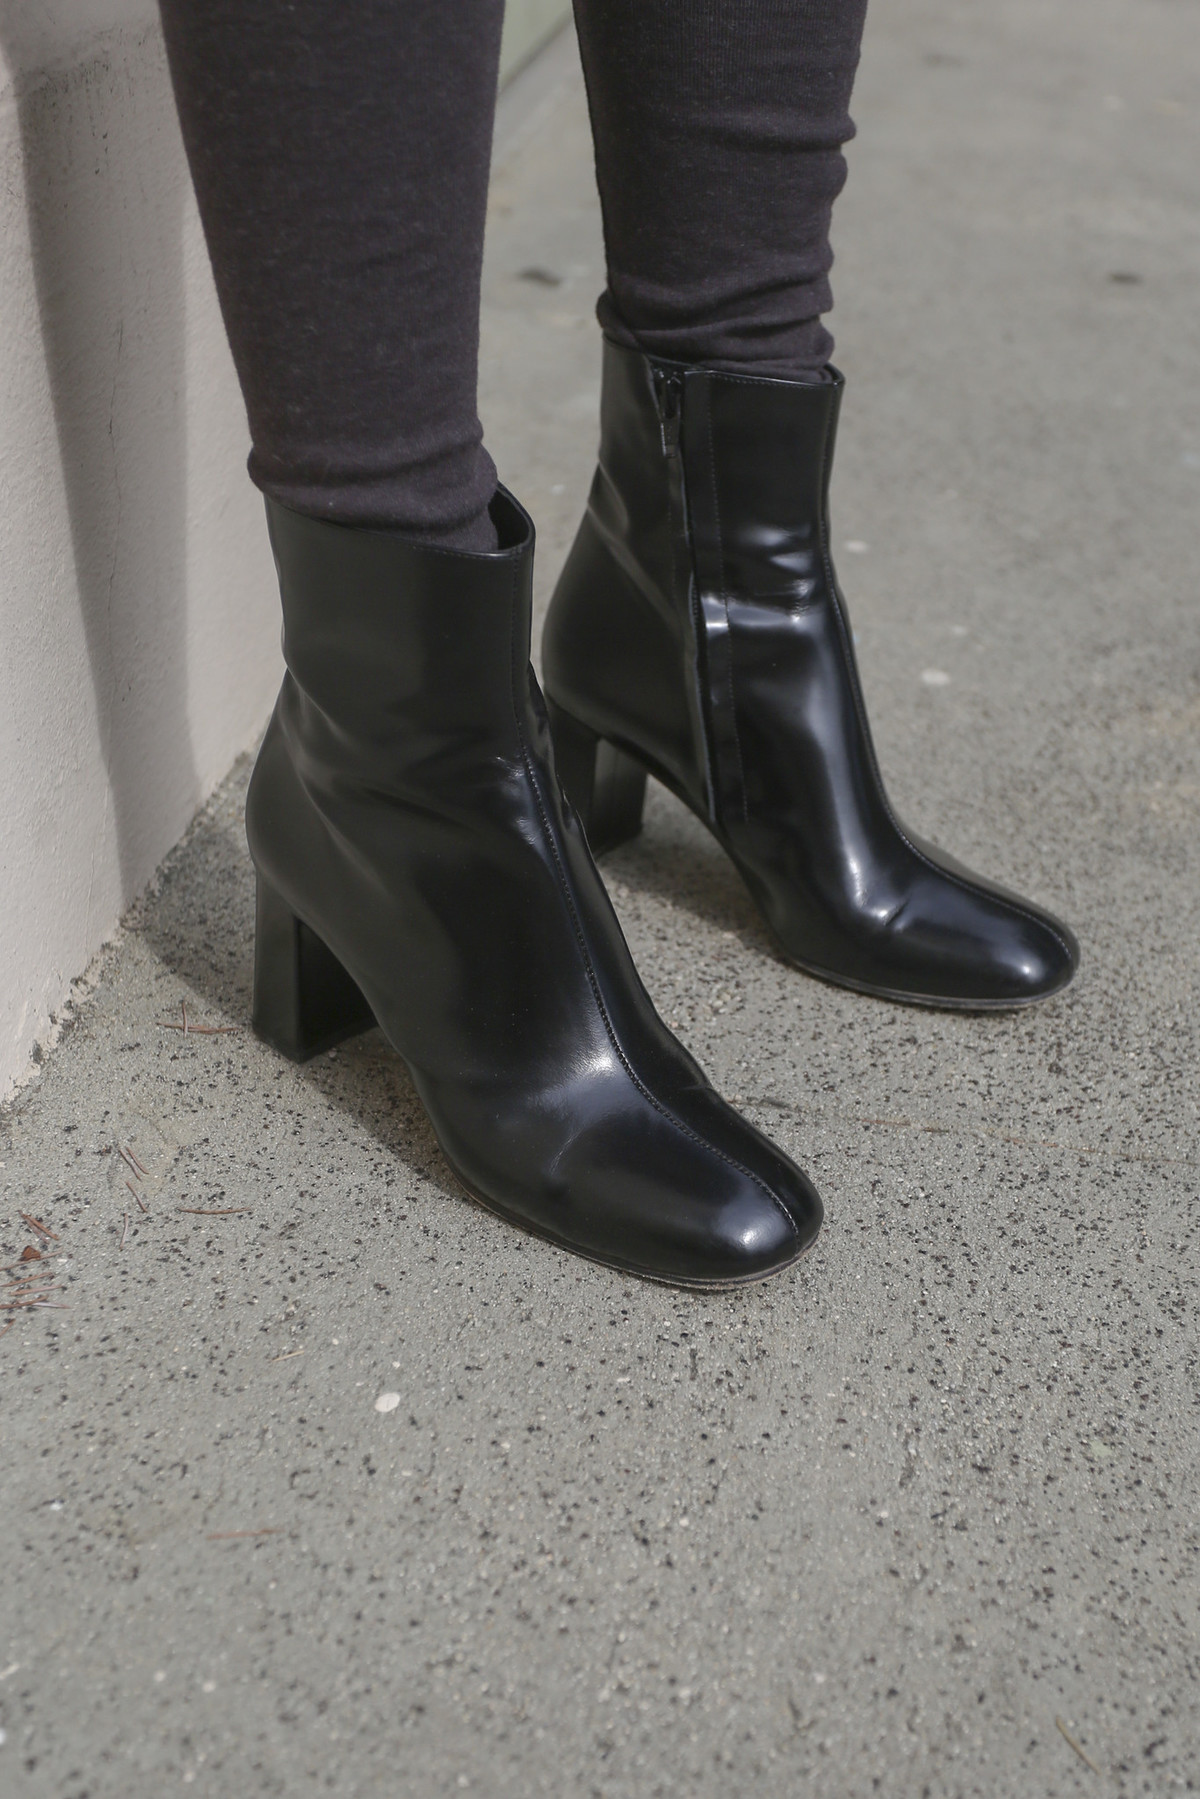 Maryam Nassir Zadeh Agnes boots buy cheap geniue stockist buy cheap from china for cheap price clearance finishline latest w2aVBJhyj